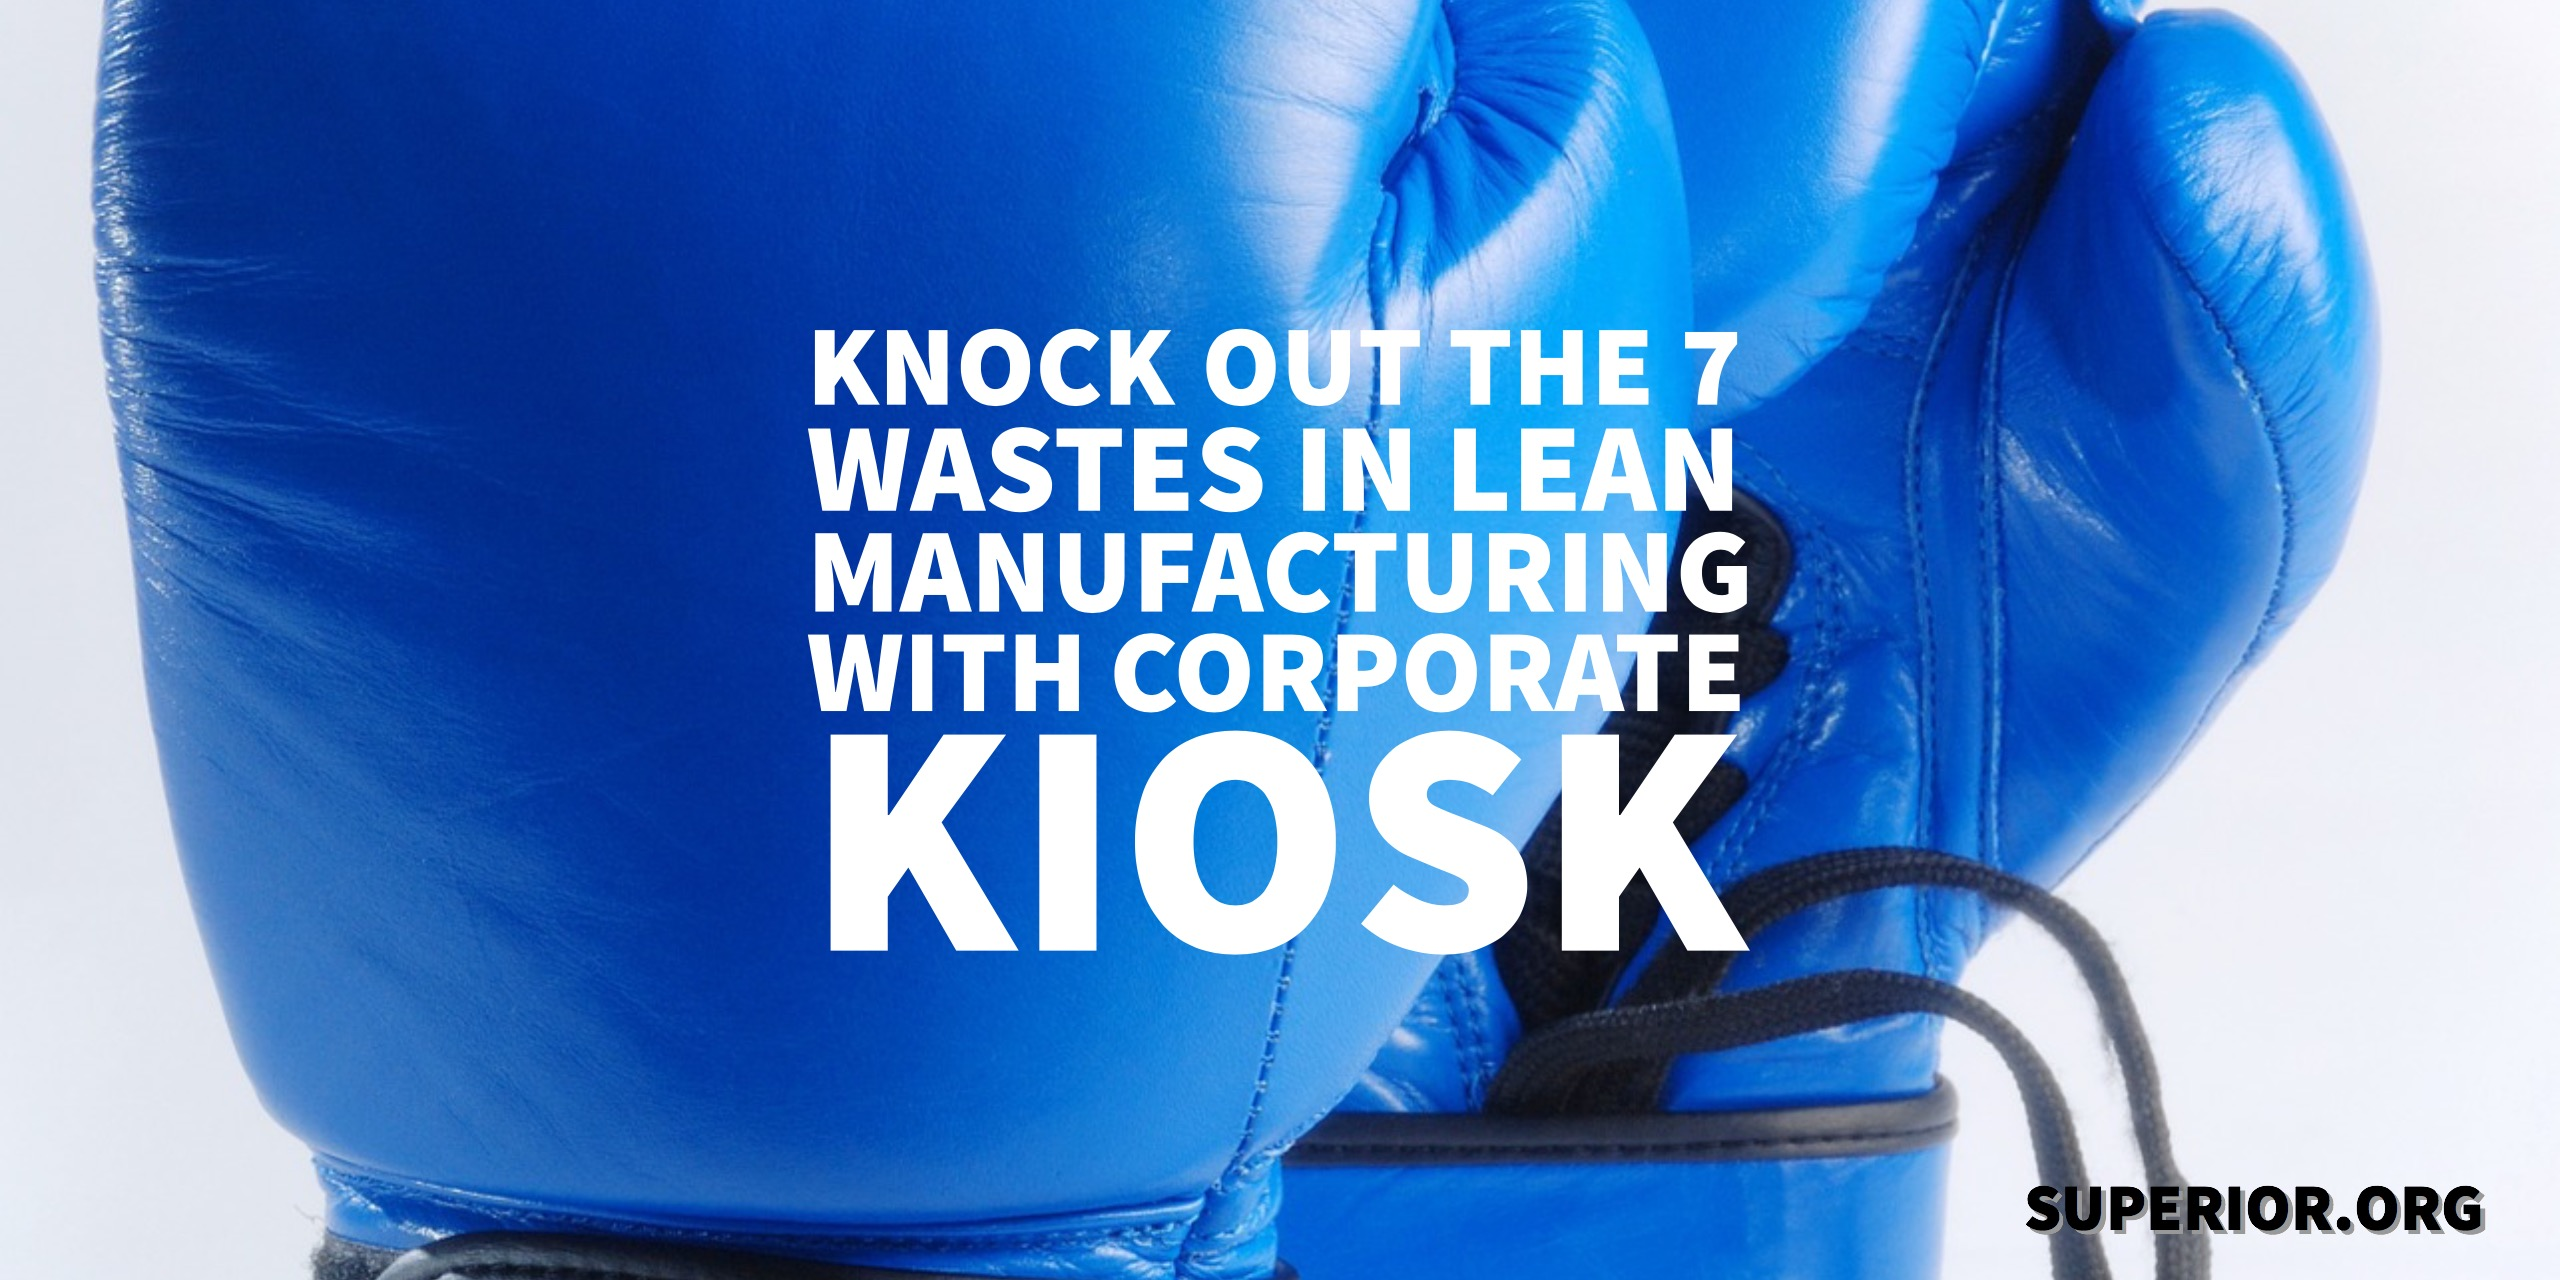 Knock Out The 7 Wastes in LEAN Manufacturing with Corporate Kiosk